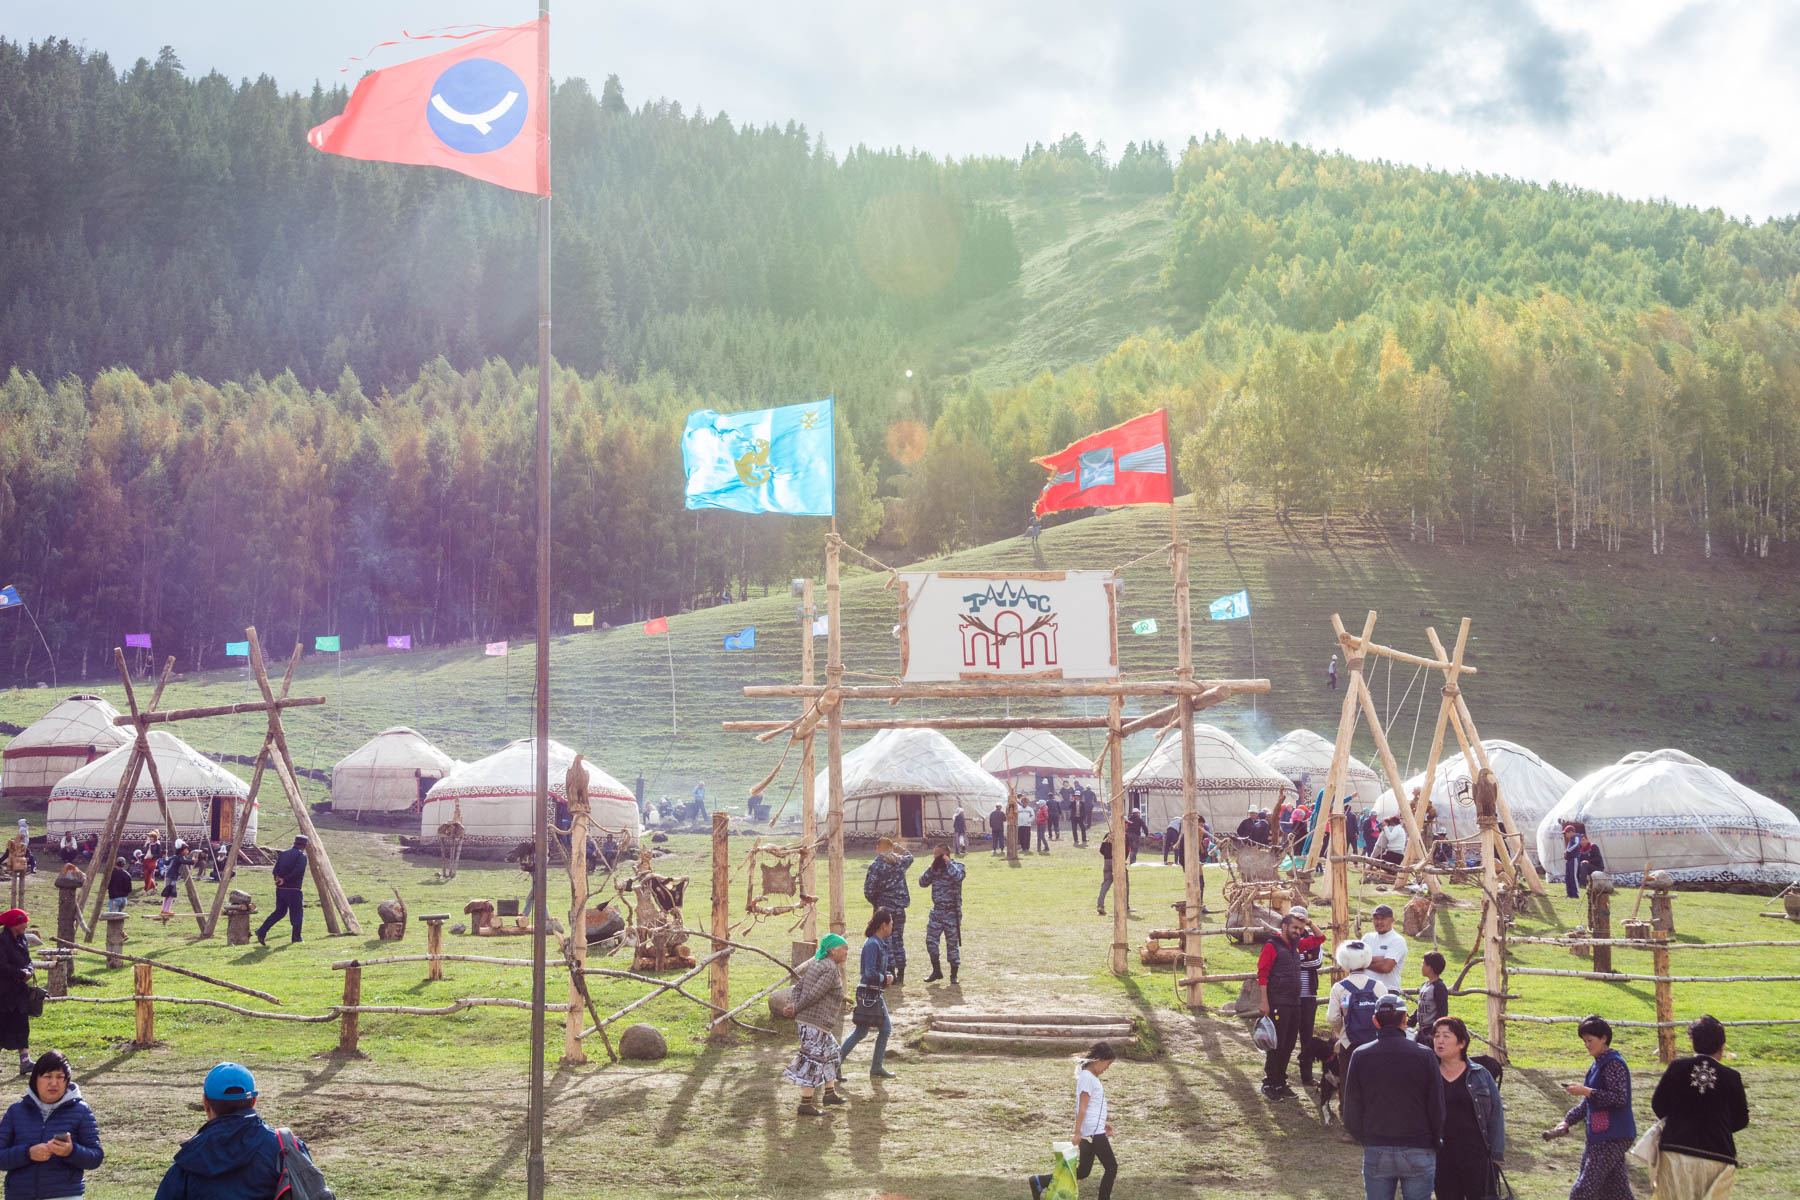 A yurt camp representing a specific region of Kyrgyzstan at the 2016 World Nomad Games